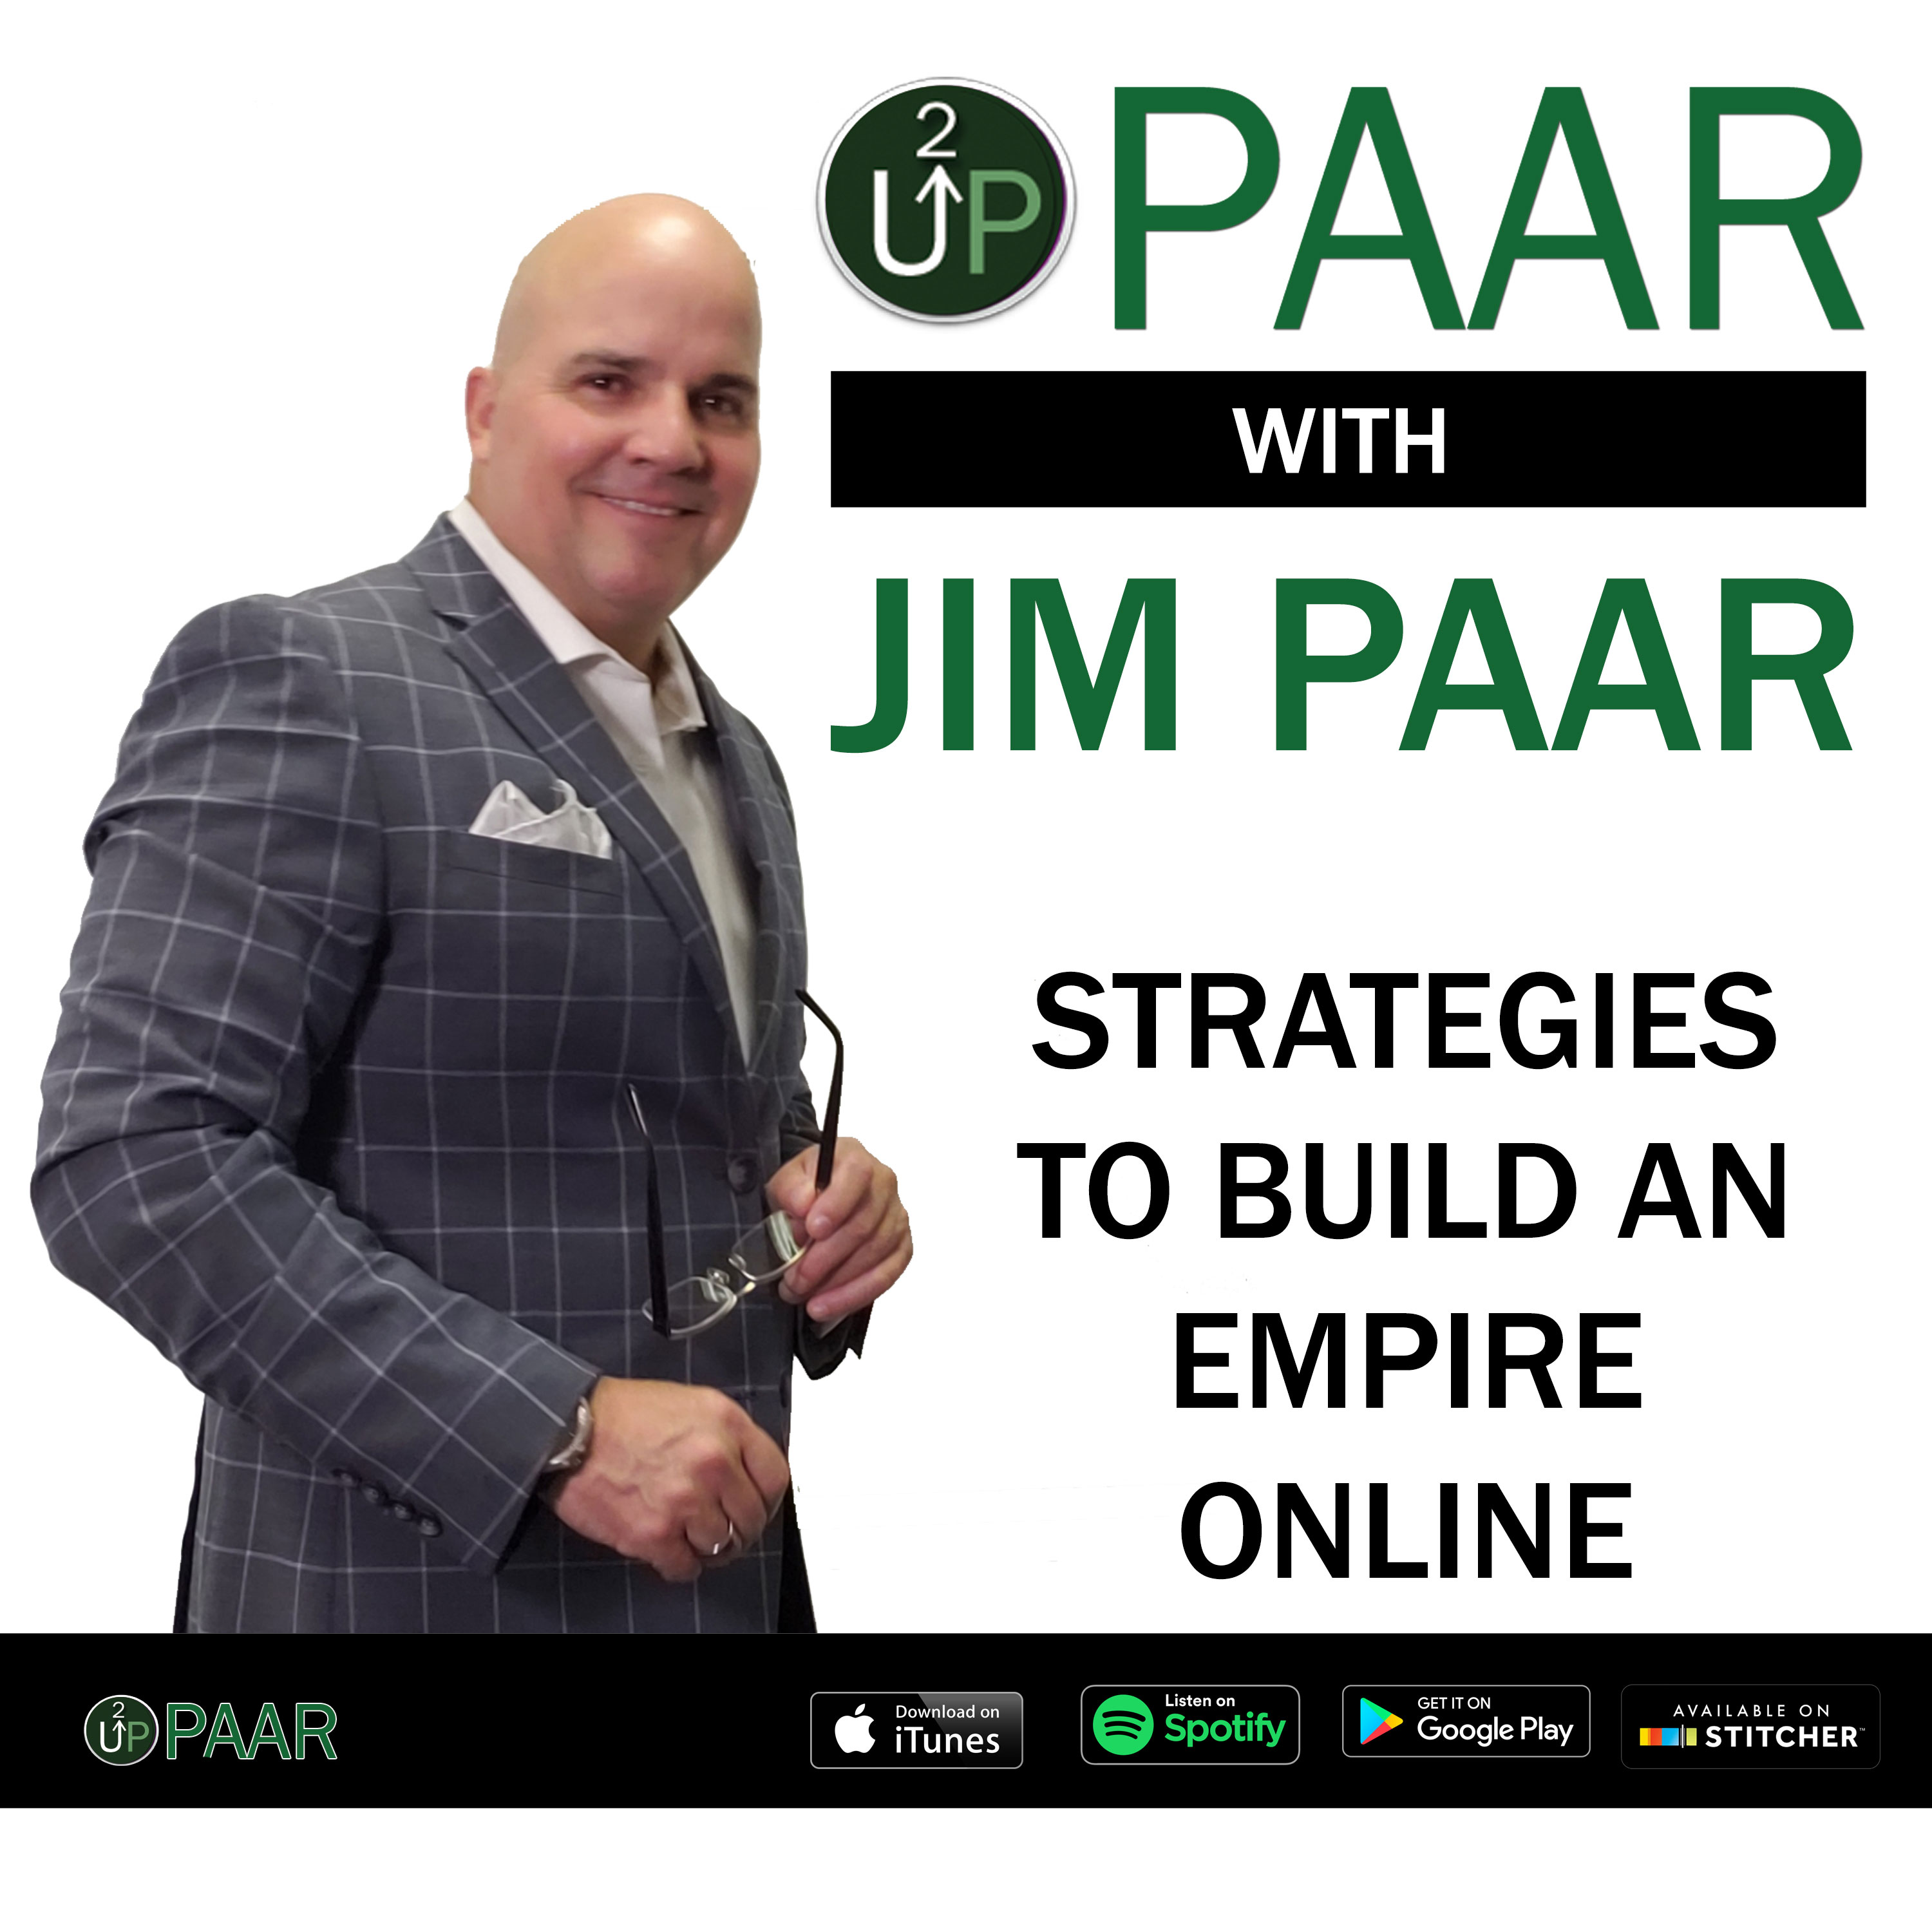 Up2Paar with Jim Paar